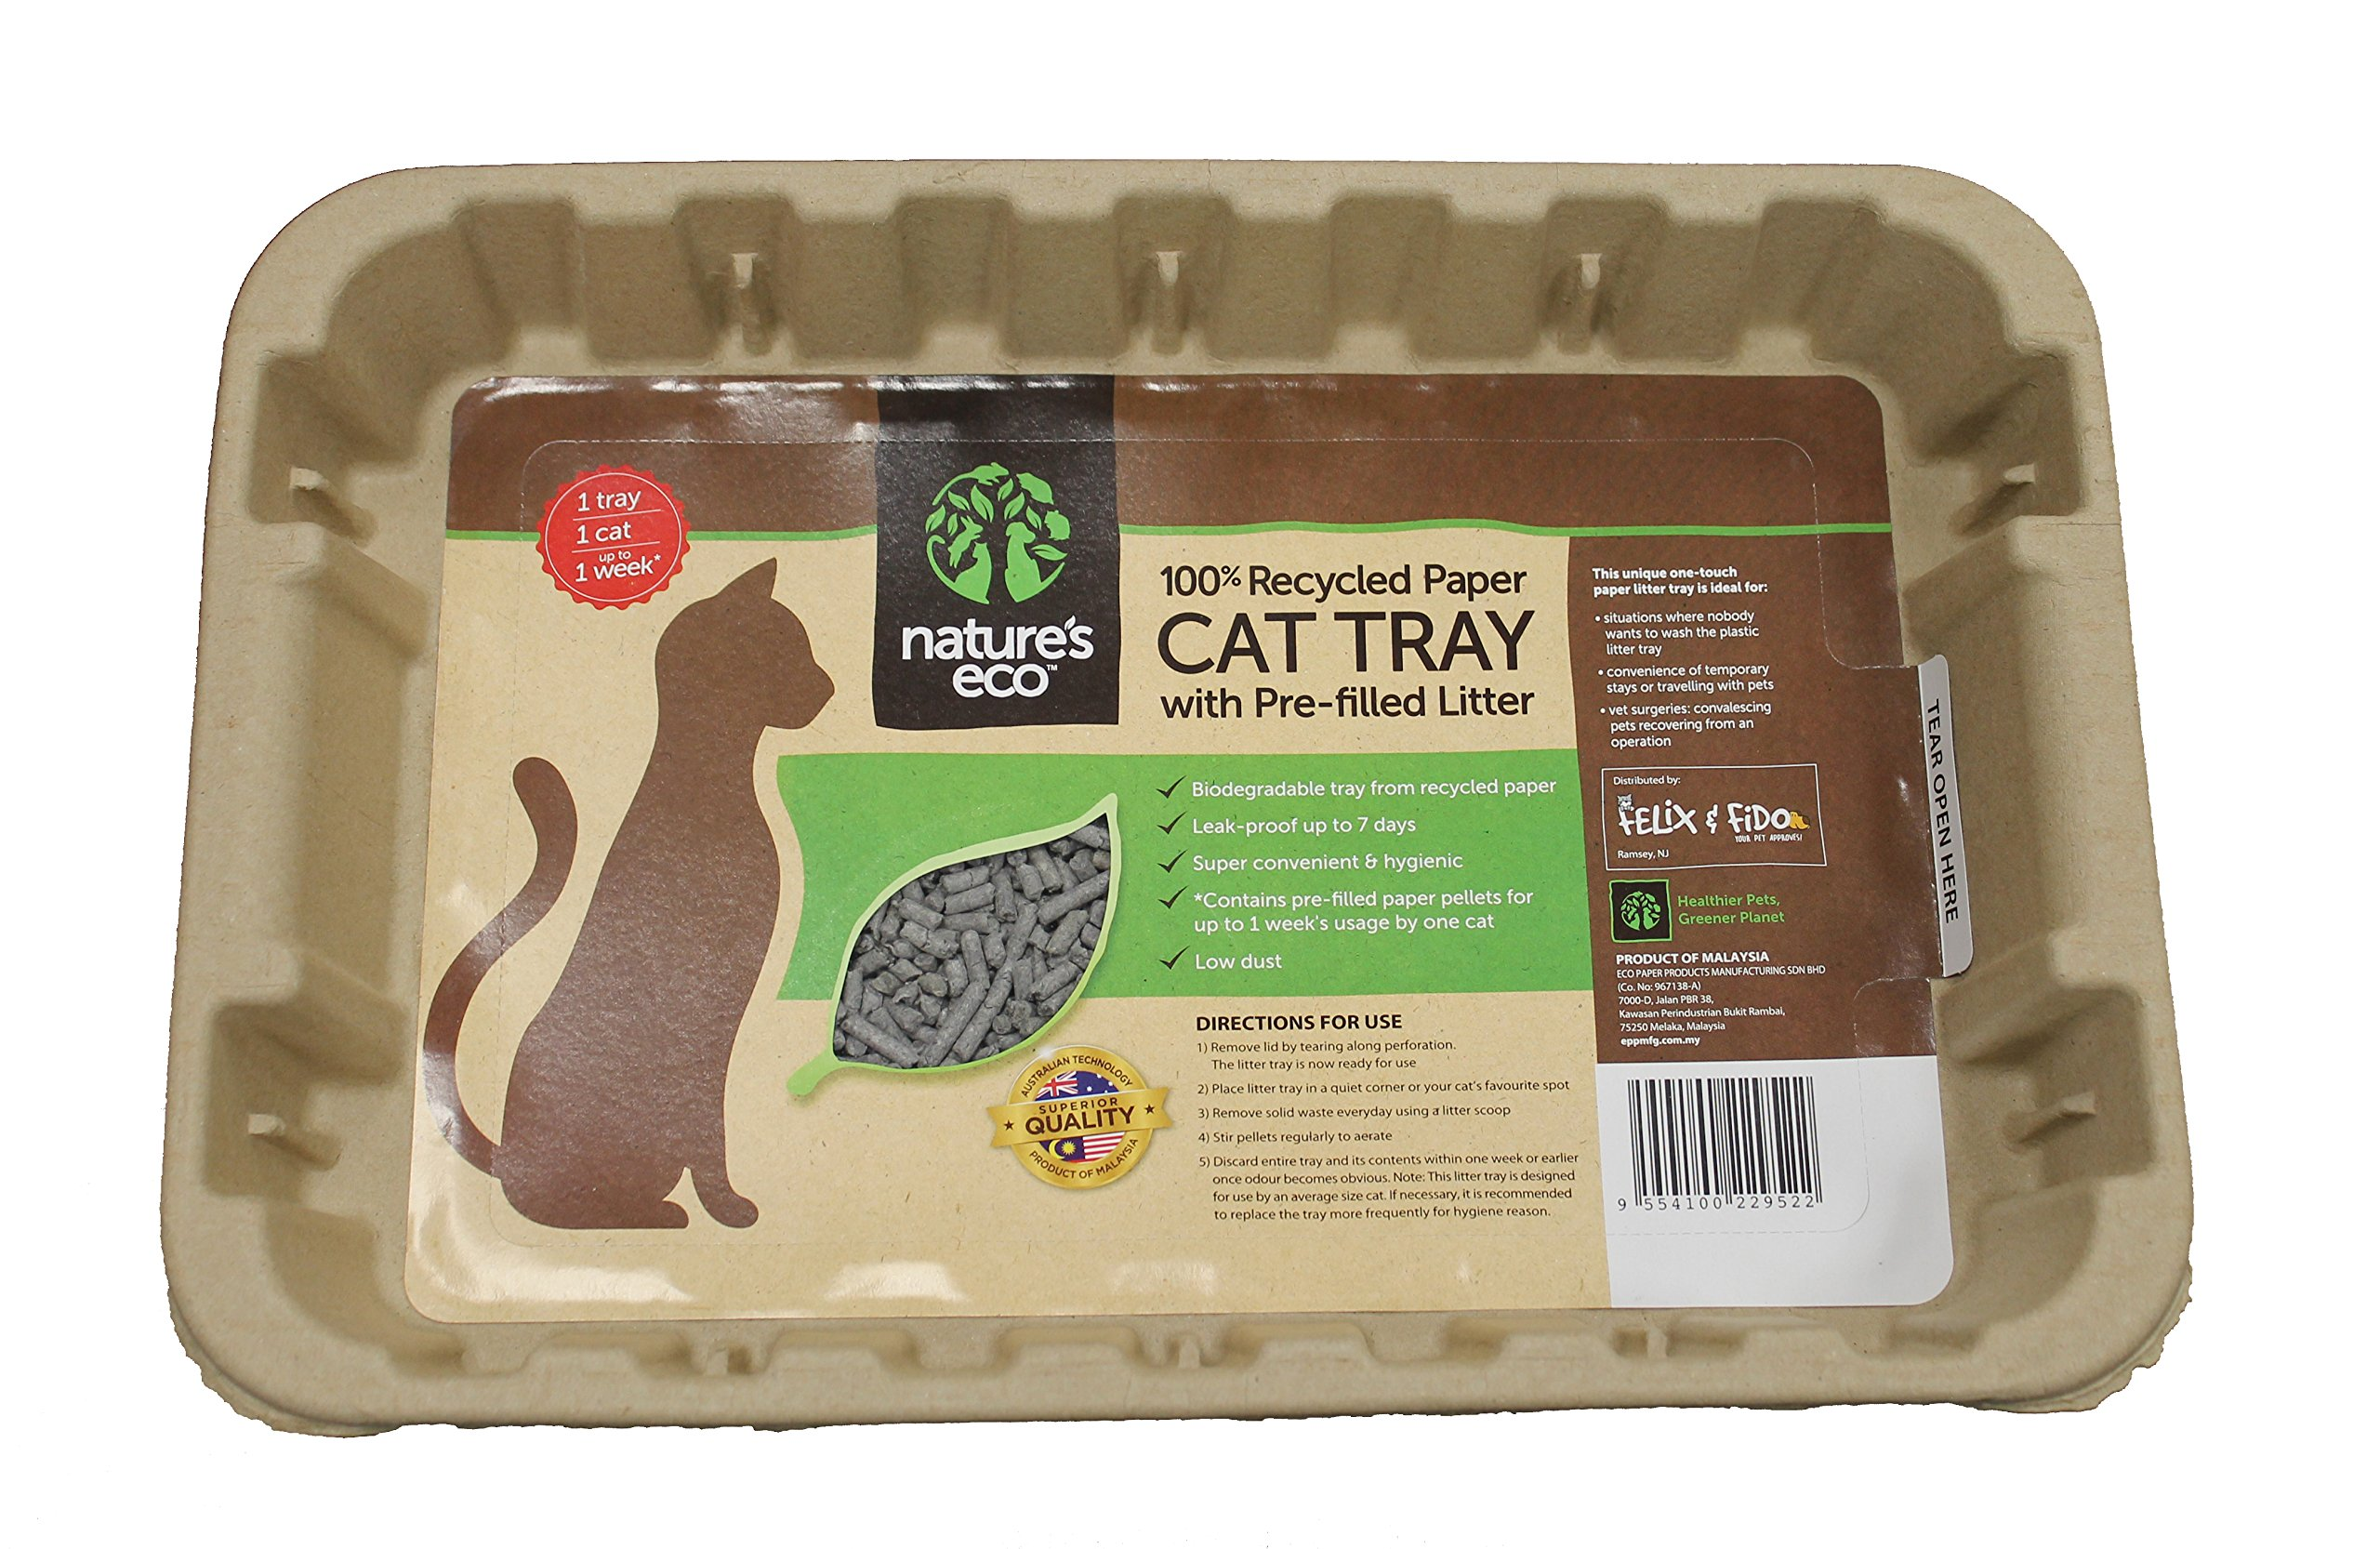 Disposable Cat Litter Boxes, Pre-Filled with 100% Recycled Paper Litter Pellets- 5 Pack of Trays- Includes Litter. Eco Friendly! Simply Peel Off Perforated Lid, Use, Dispose of Entire Tray! by Felix & Fido